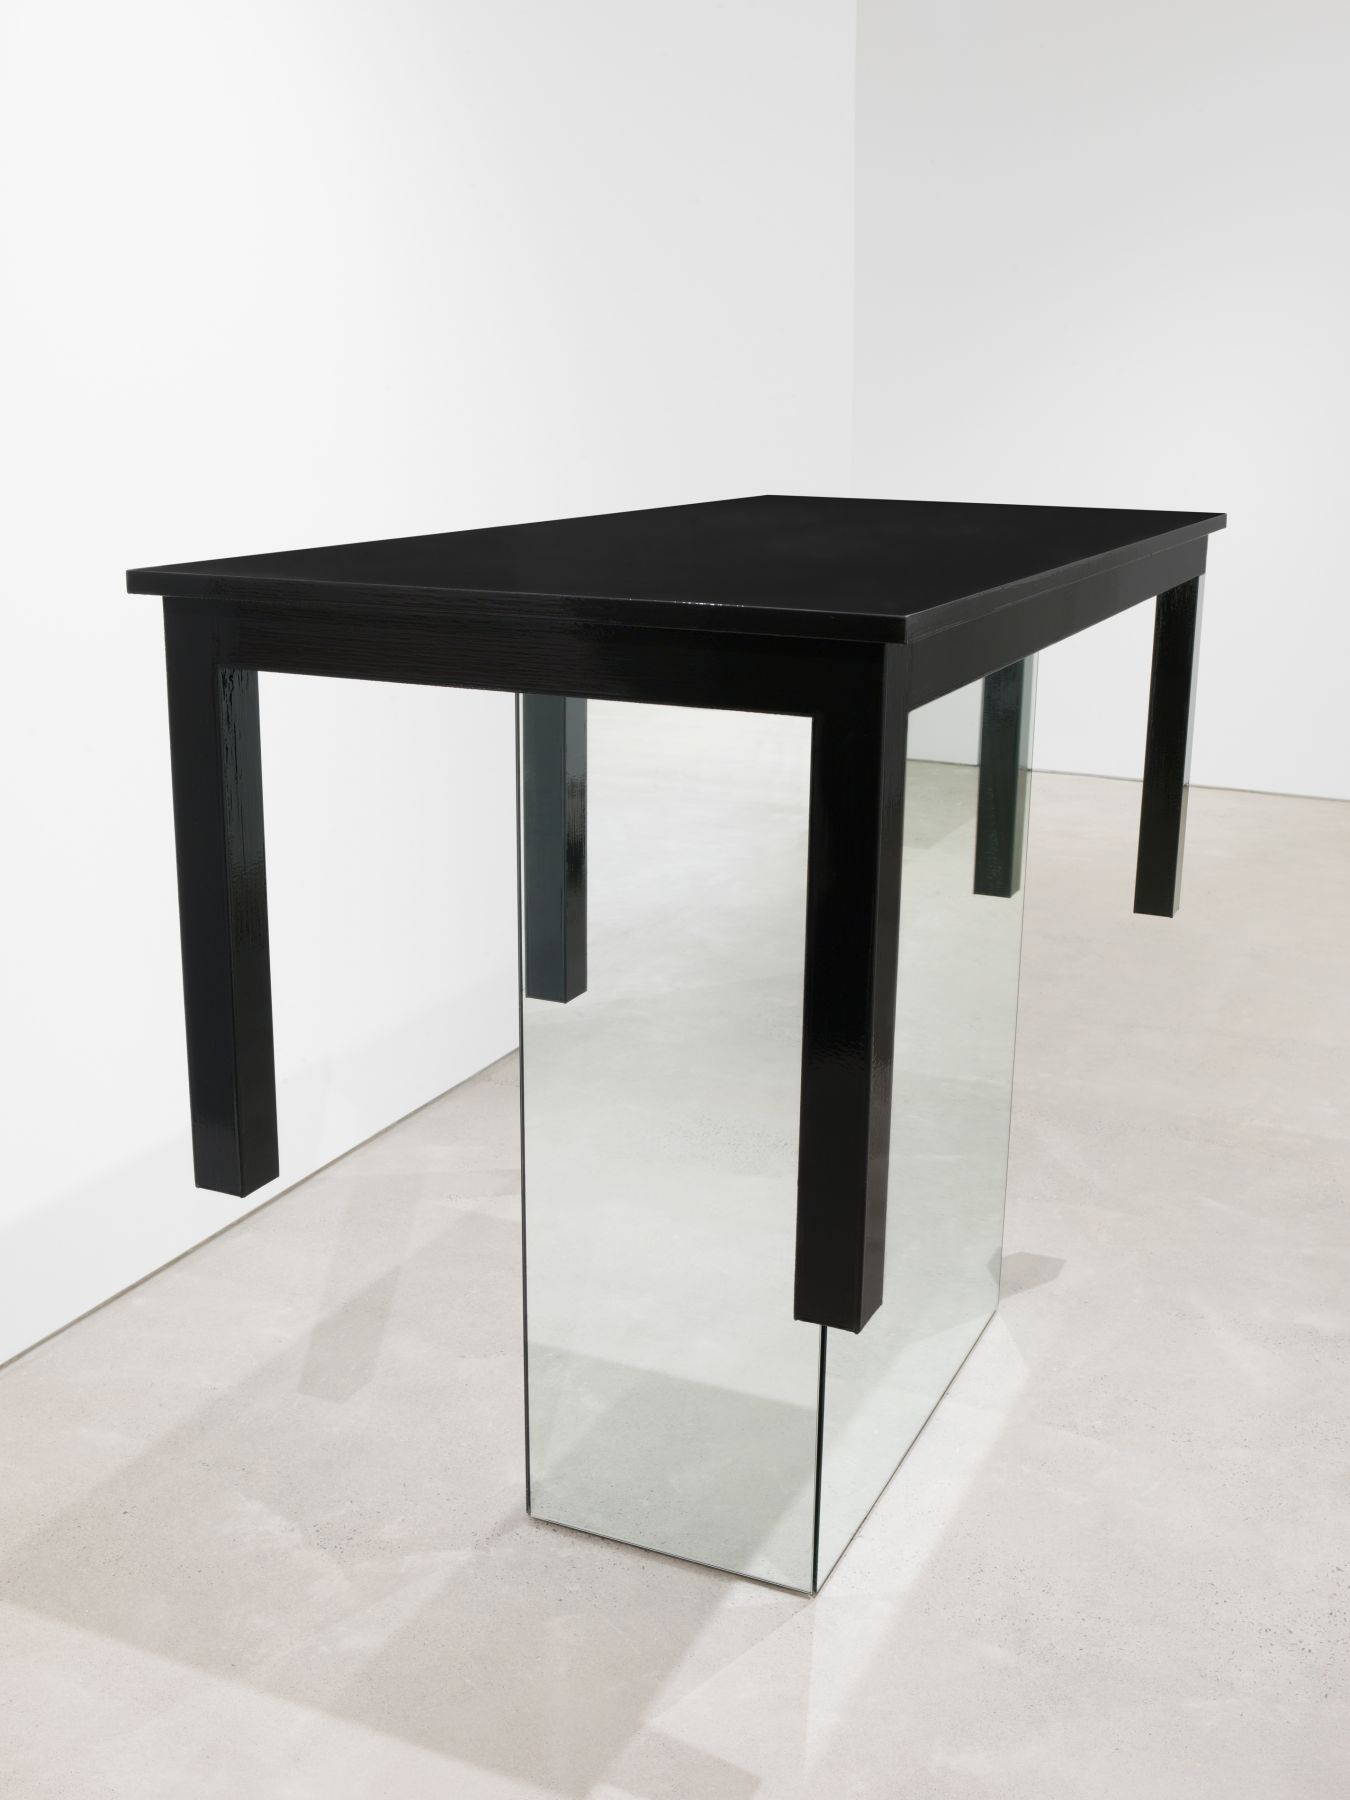 A Table with 90 Coats of Paint, 2016, Enamel on eastern maple and plywood, mirrored glass